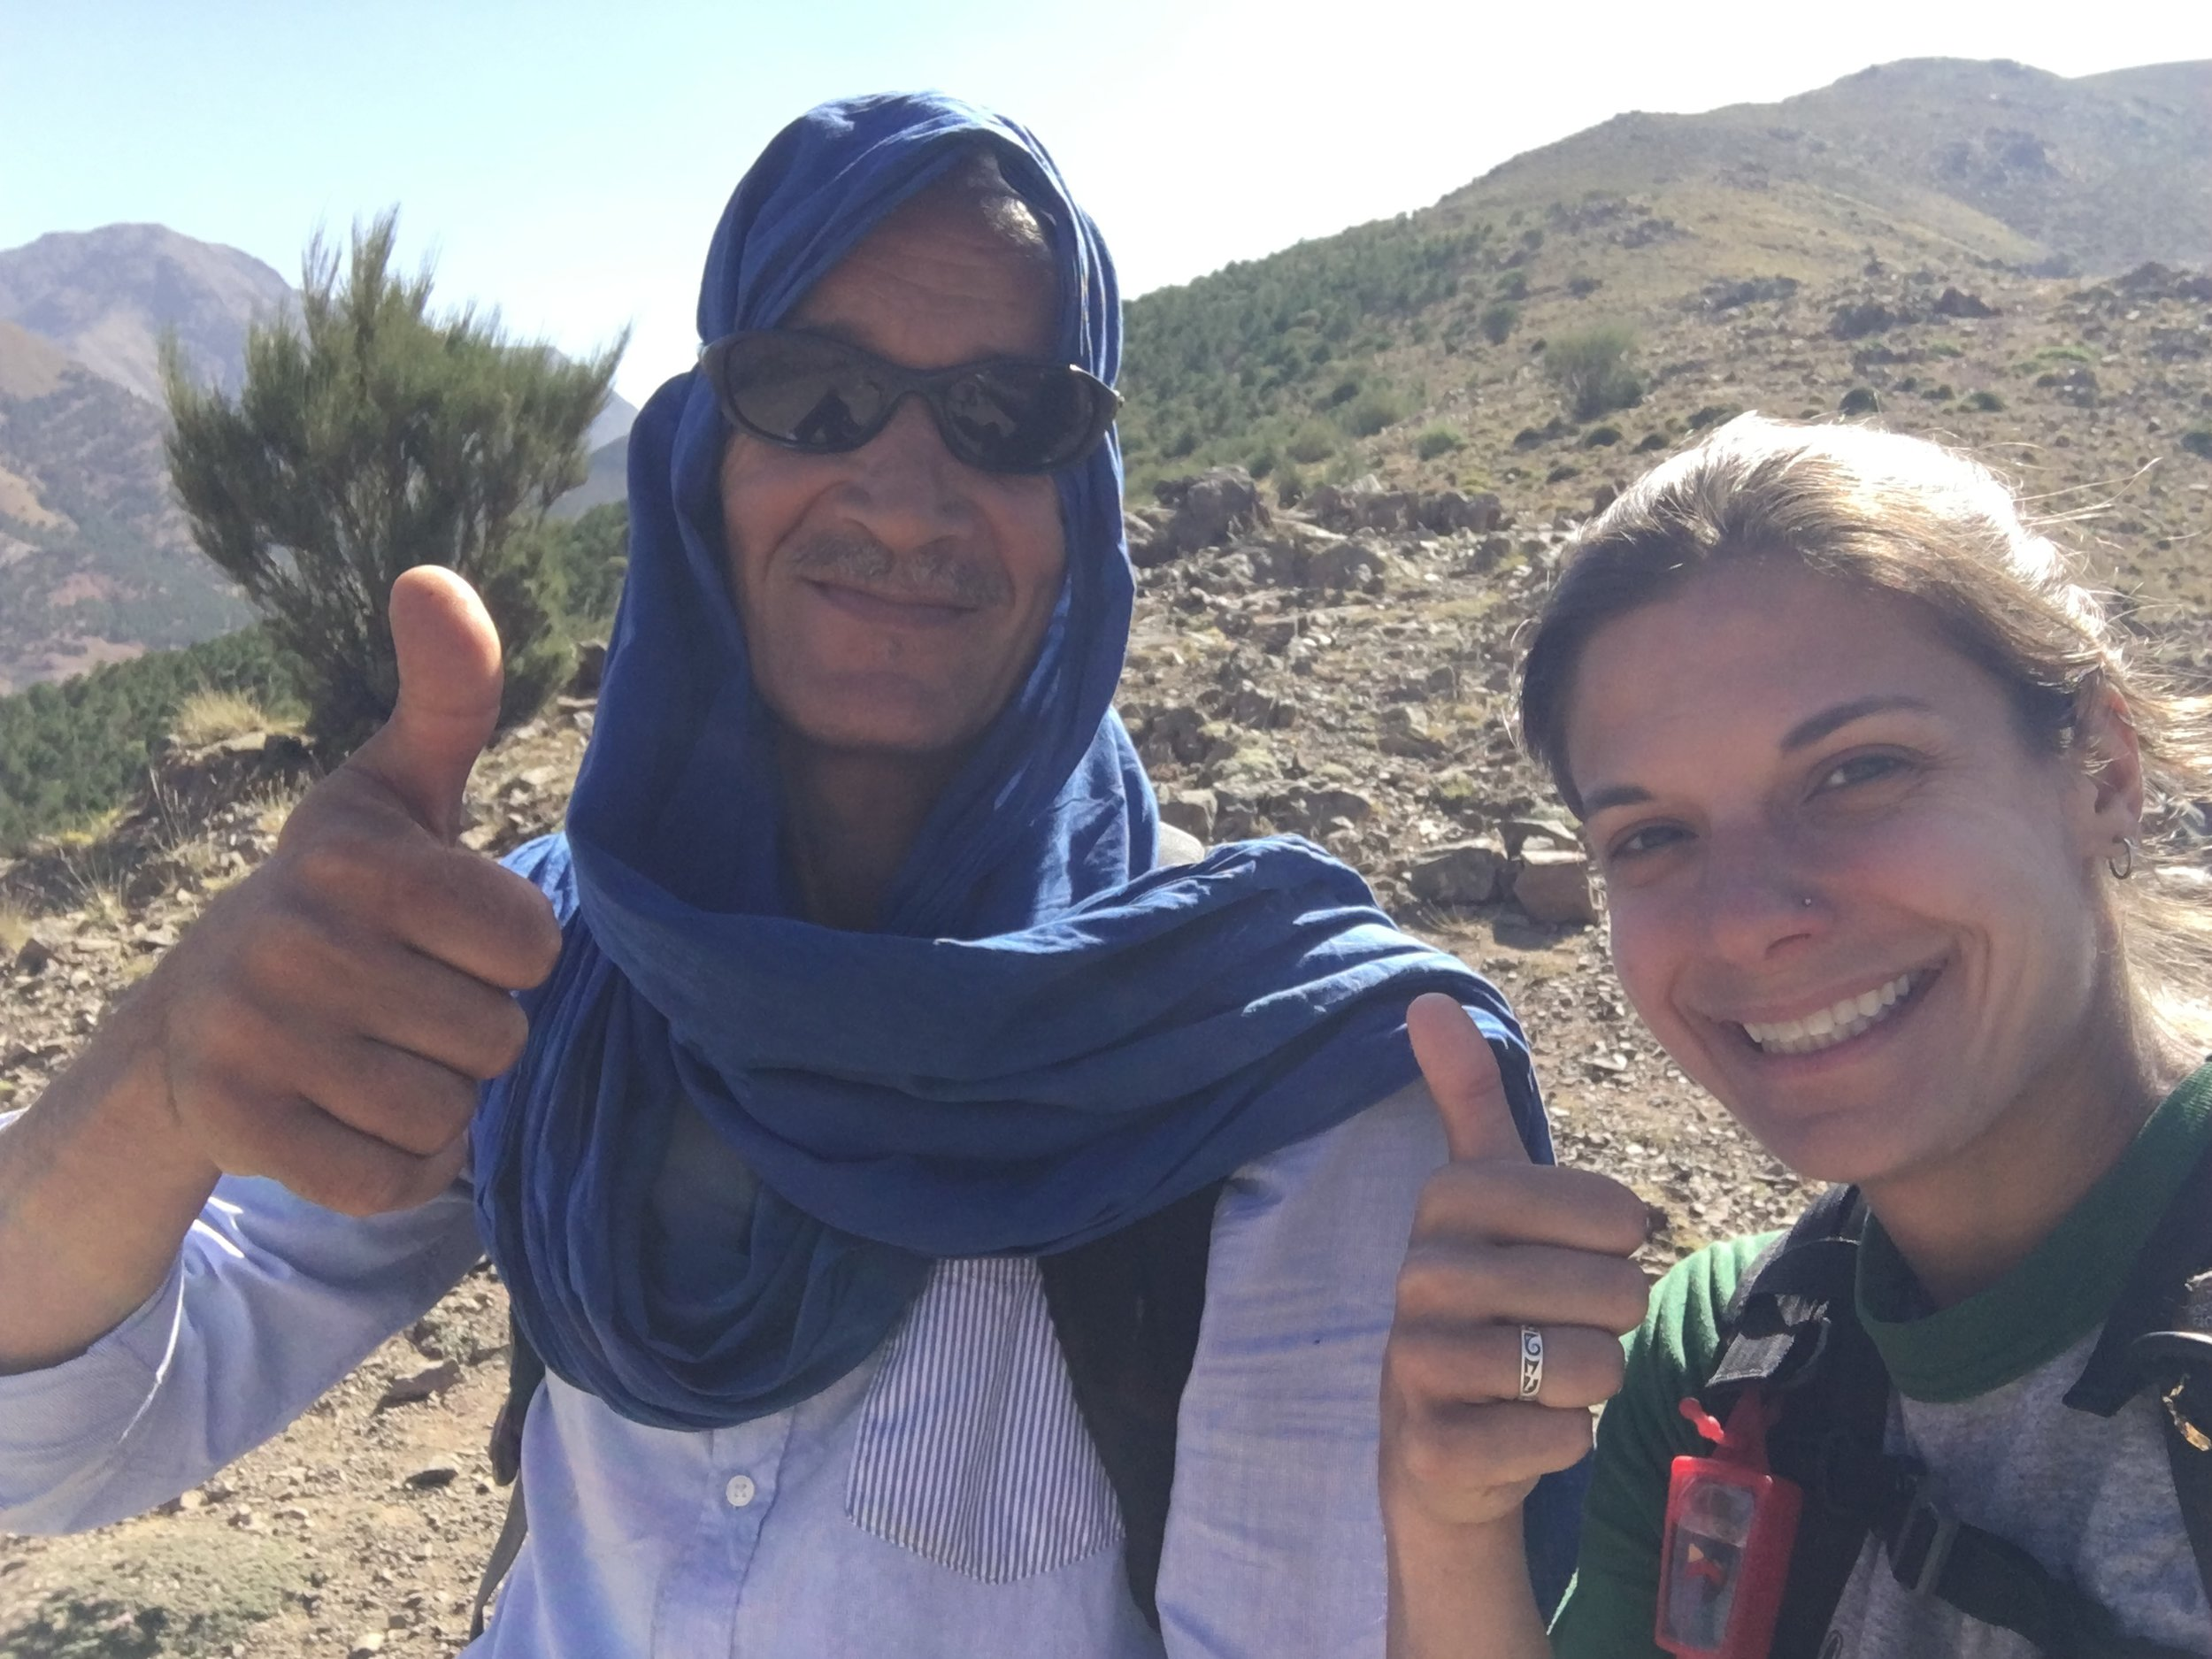 Ali likes the mountains as much as I do. We give the High Atlas a big thumbs up.